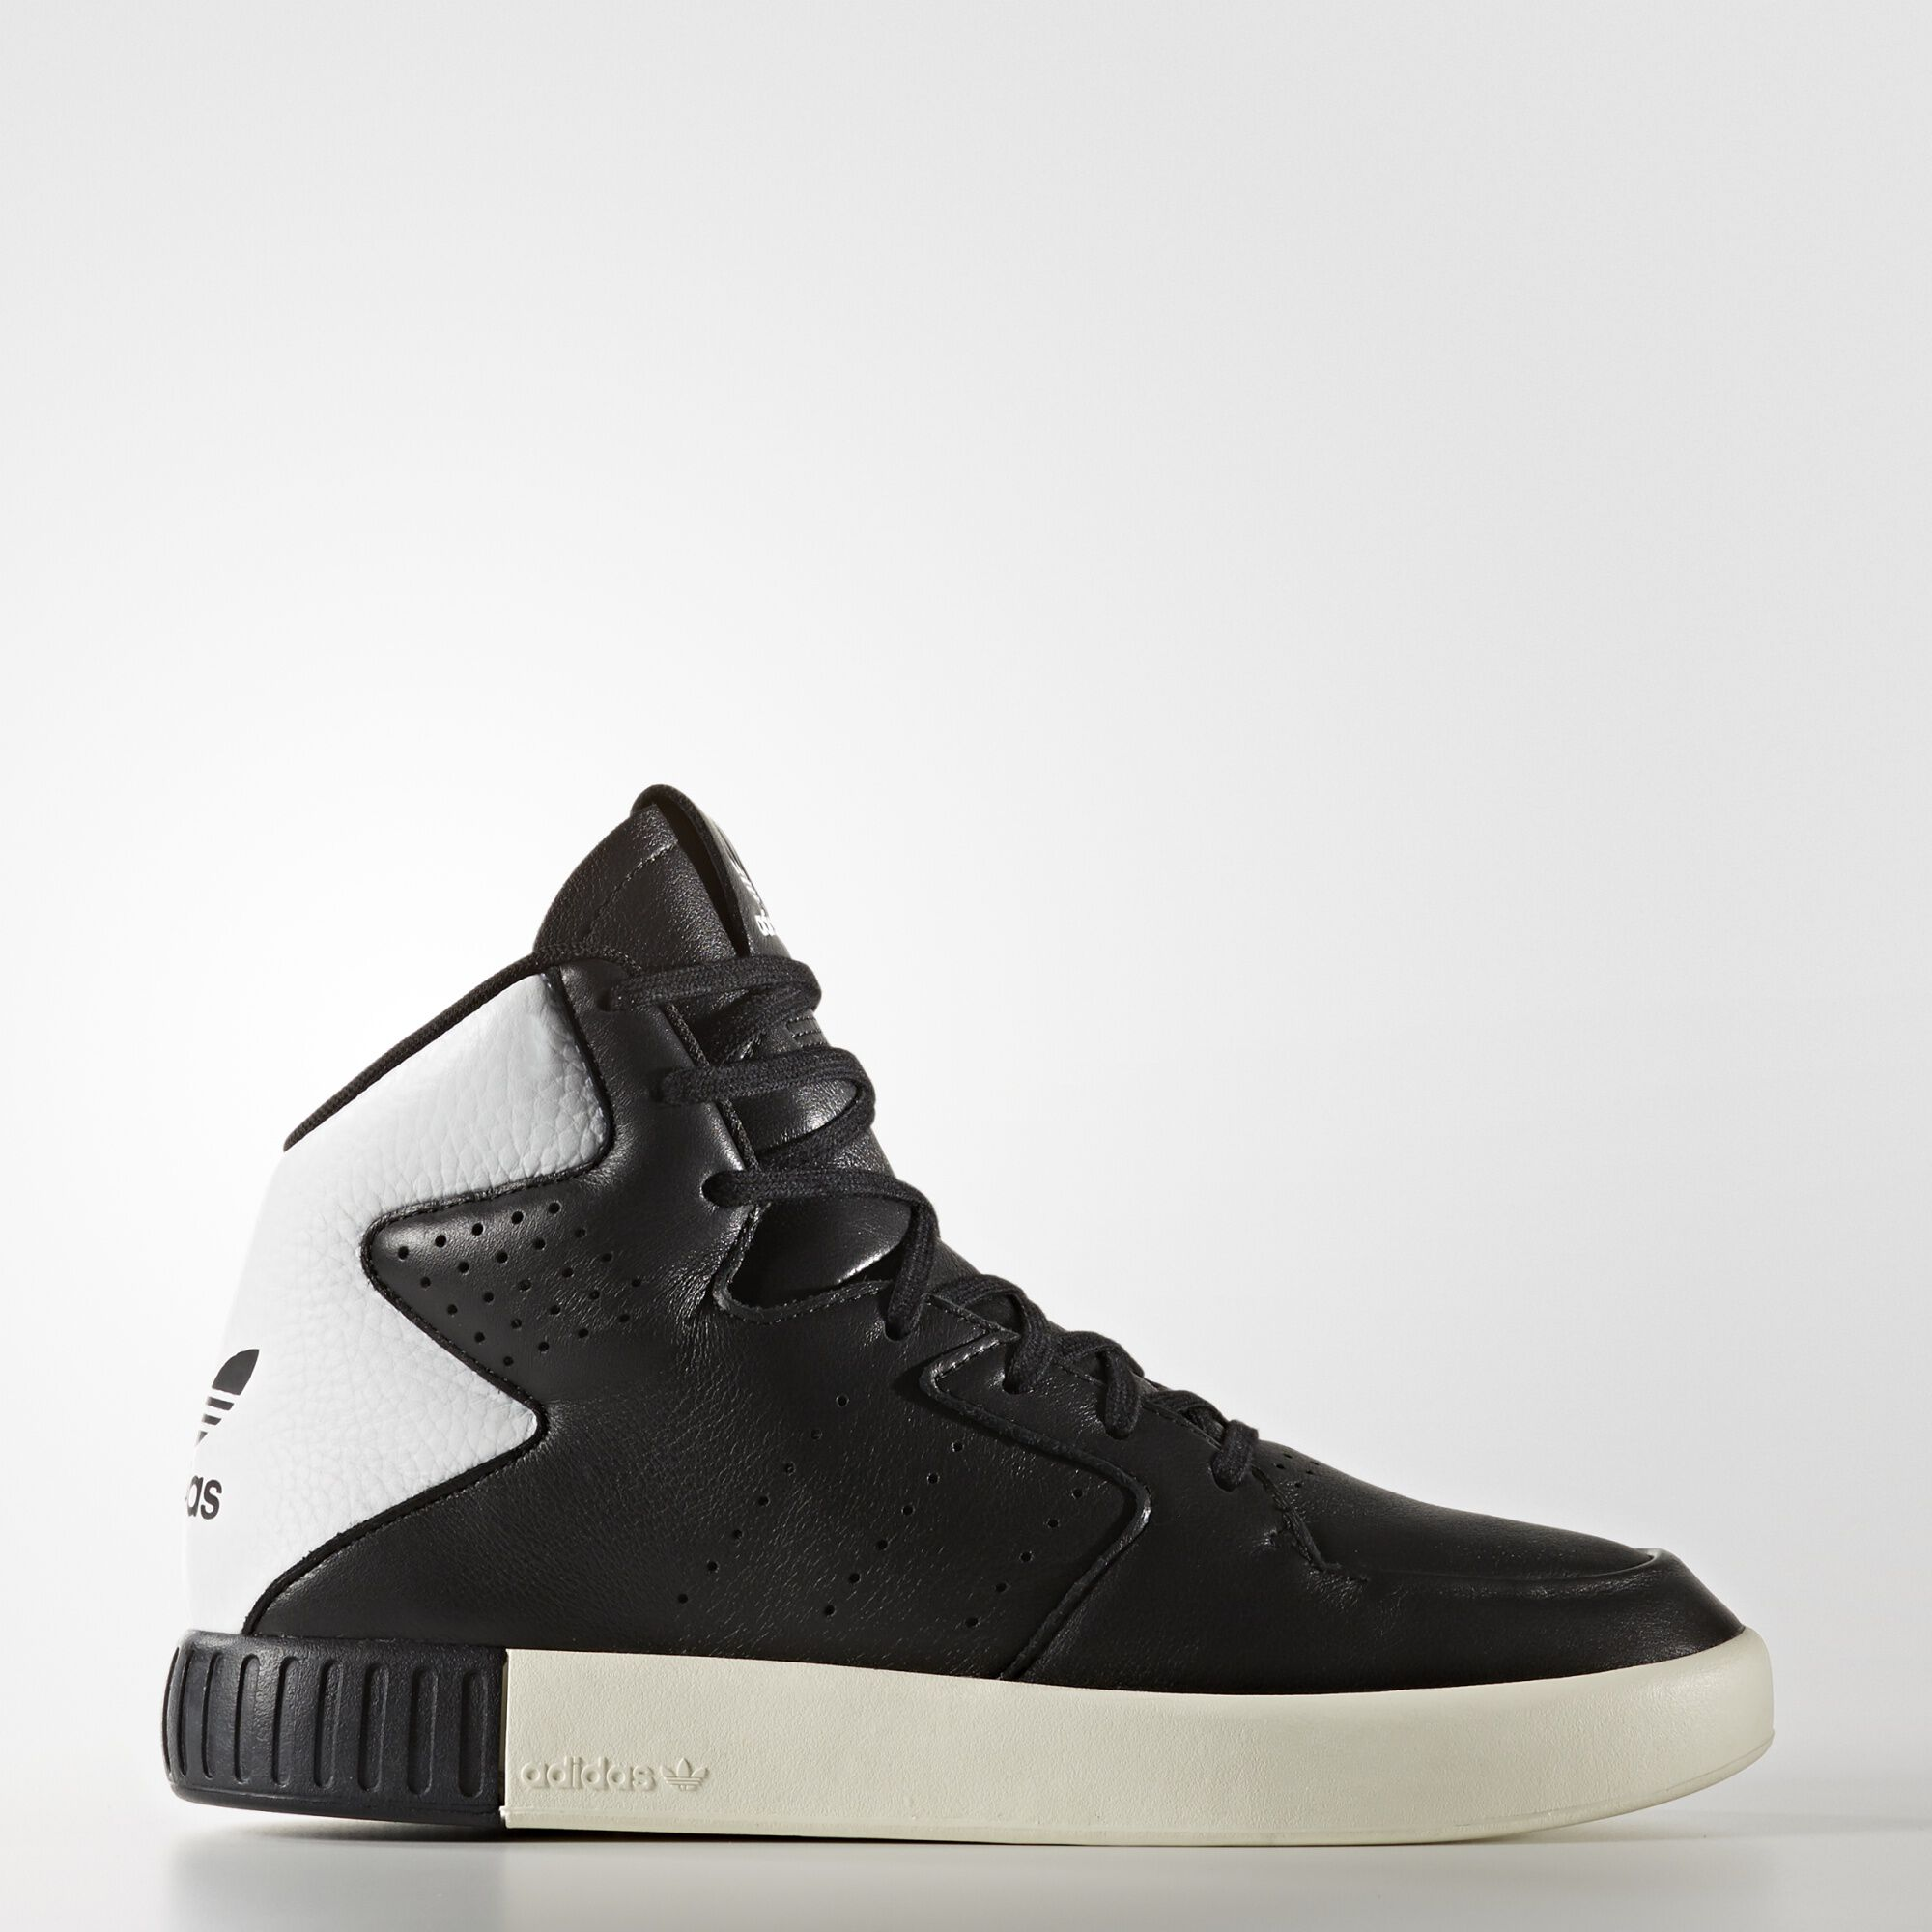 Adidas Tubular Invader Strap Shoes Green adidas UK